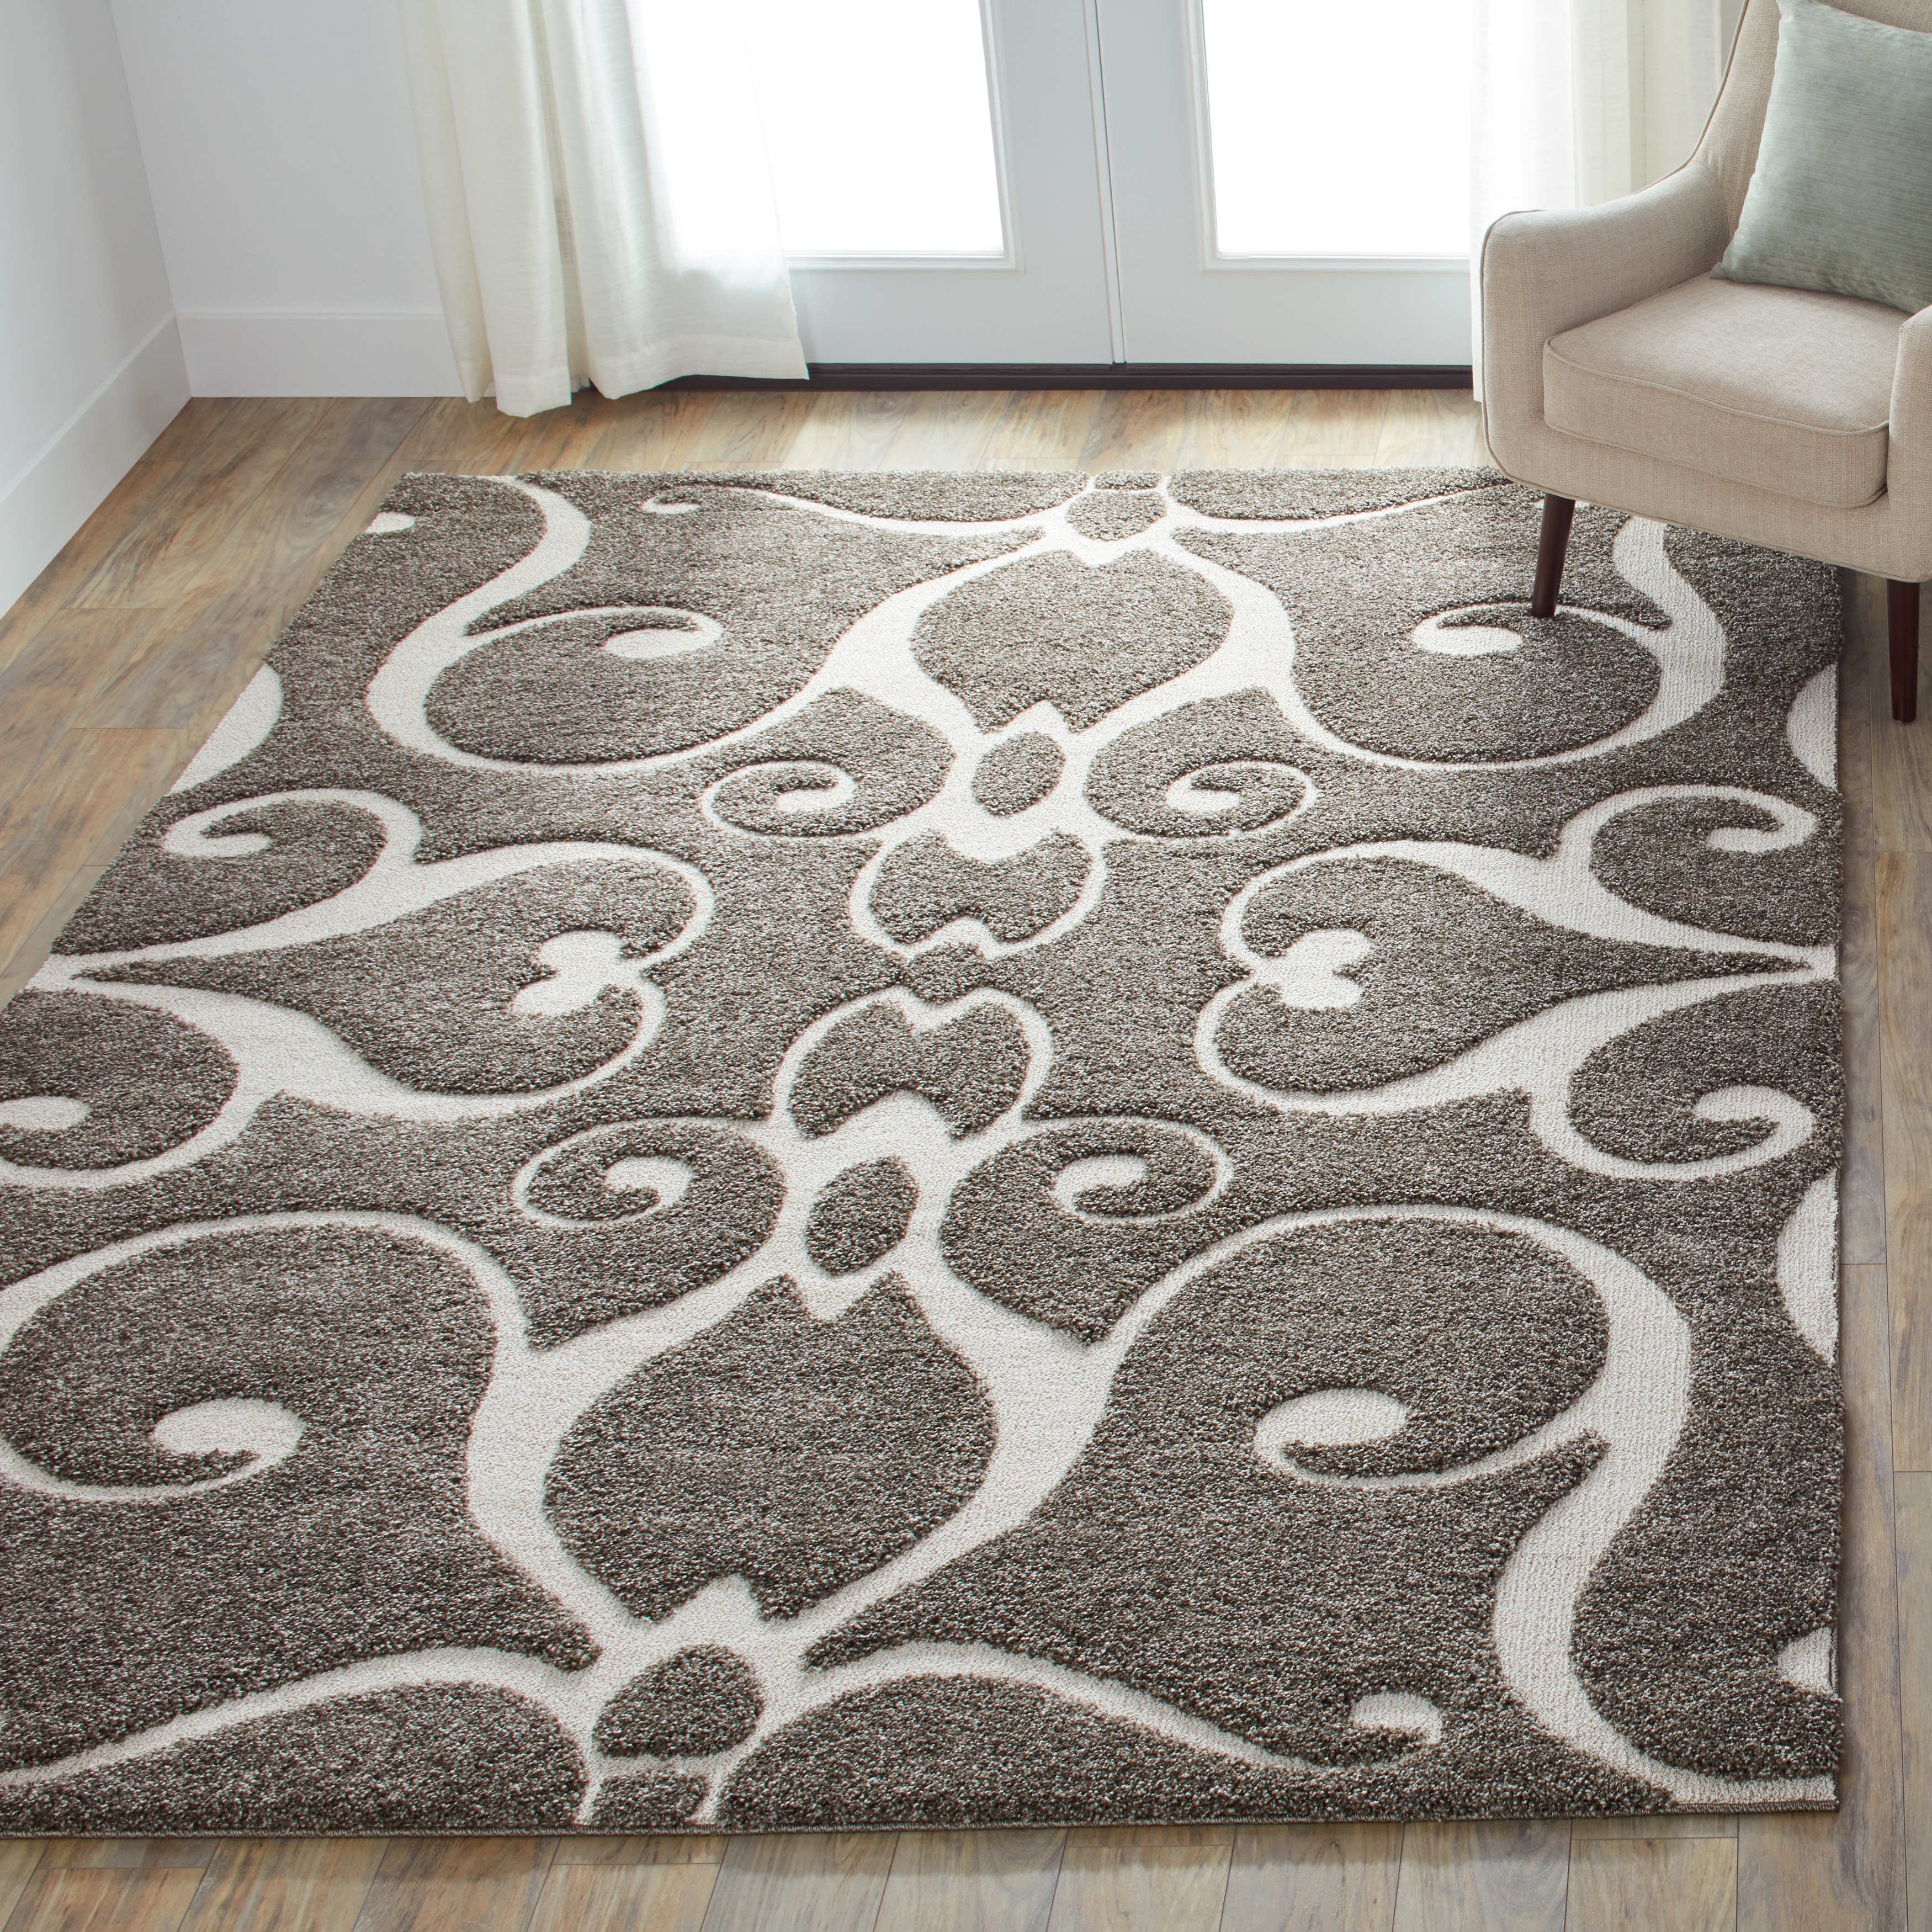 Shop Mid Century Grey Taupe Scroll Shag Area Rug 5 3 X 7 7 On